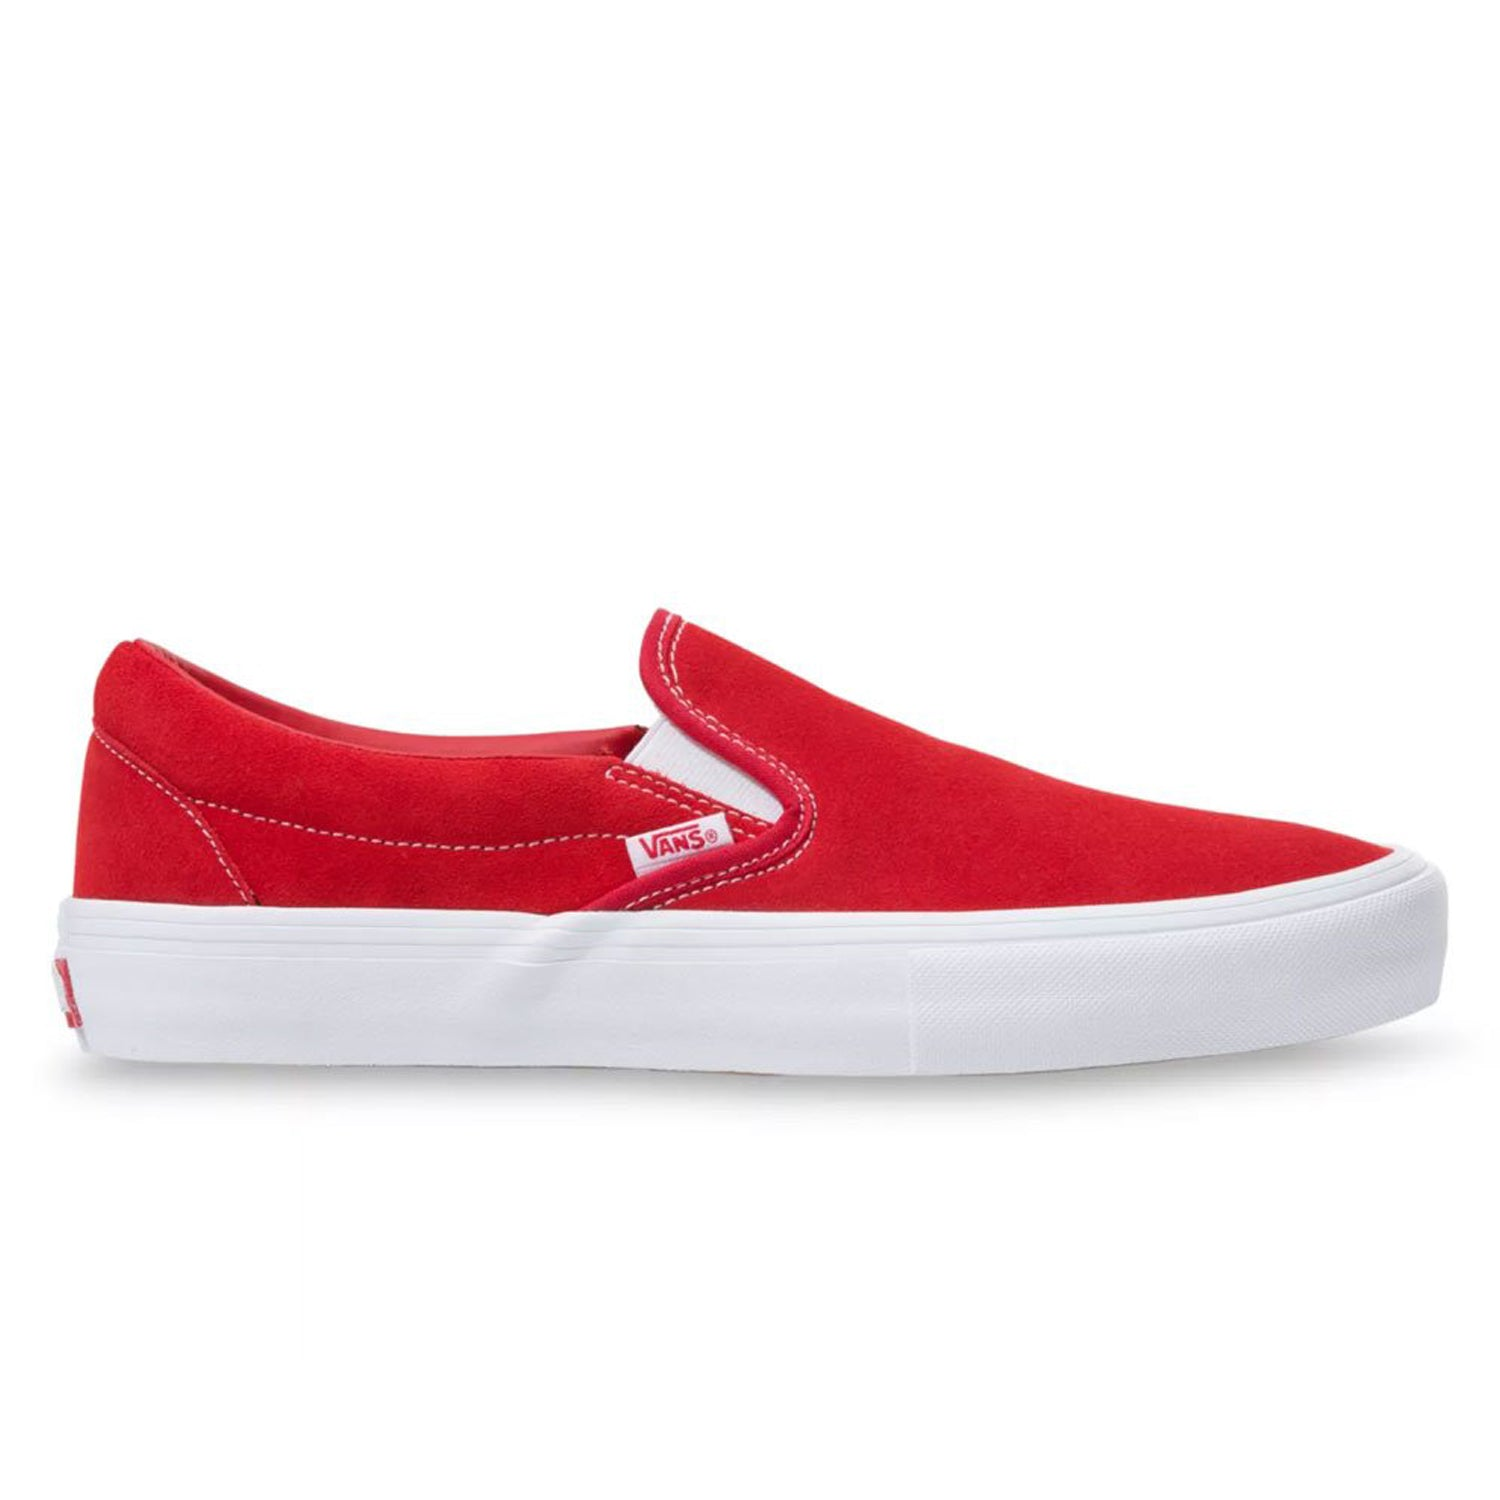 Vans Slip-On Pro (Suede) Red/White